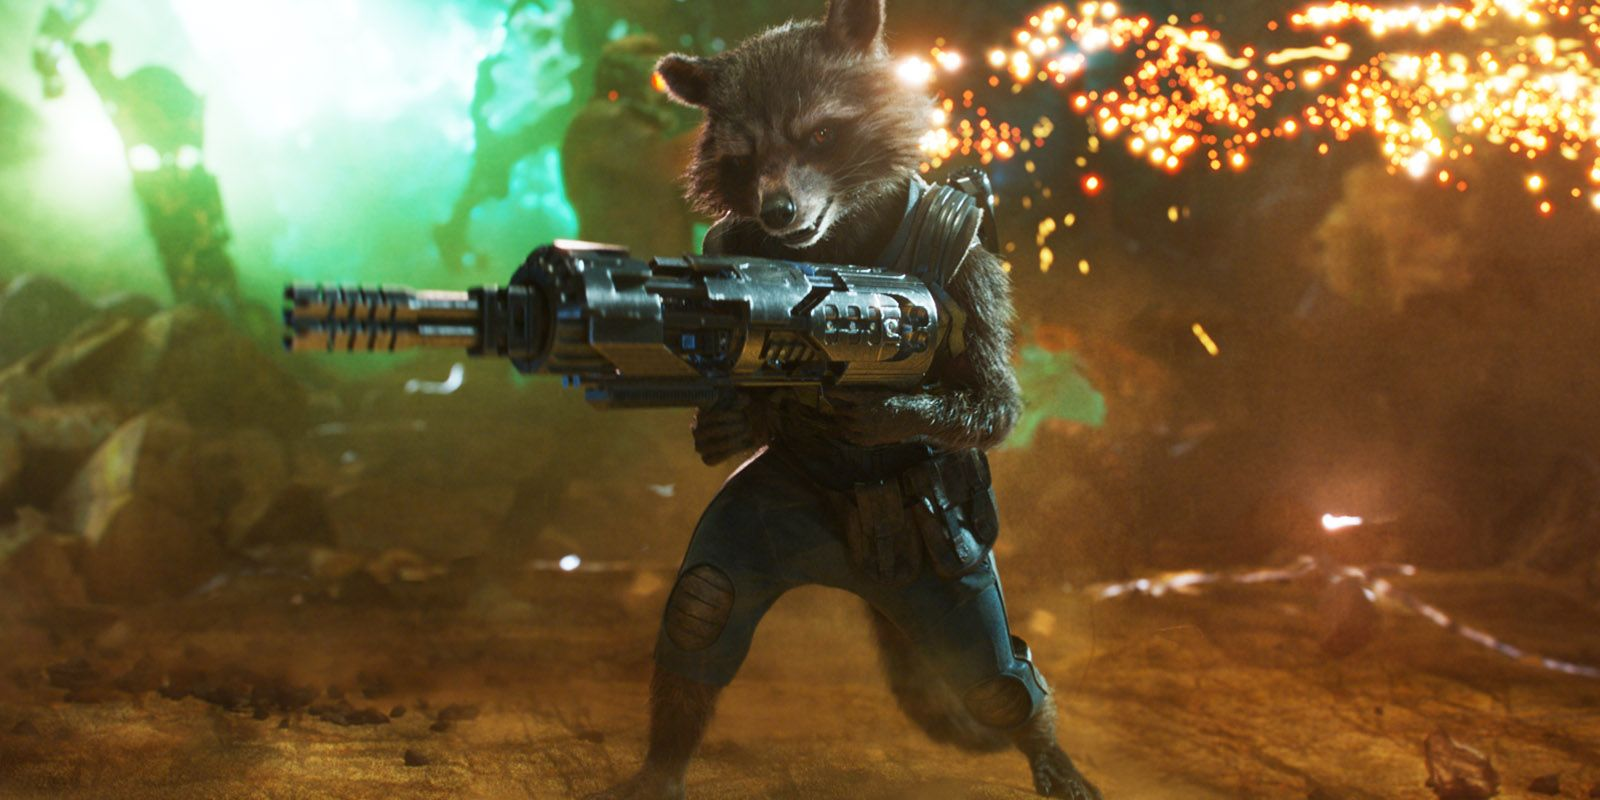 James Gunn Excited To Finish Rocket's Arc In Guardians of